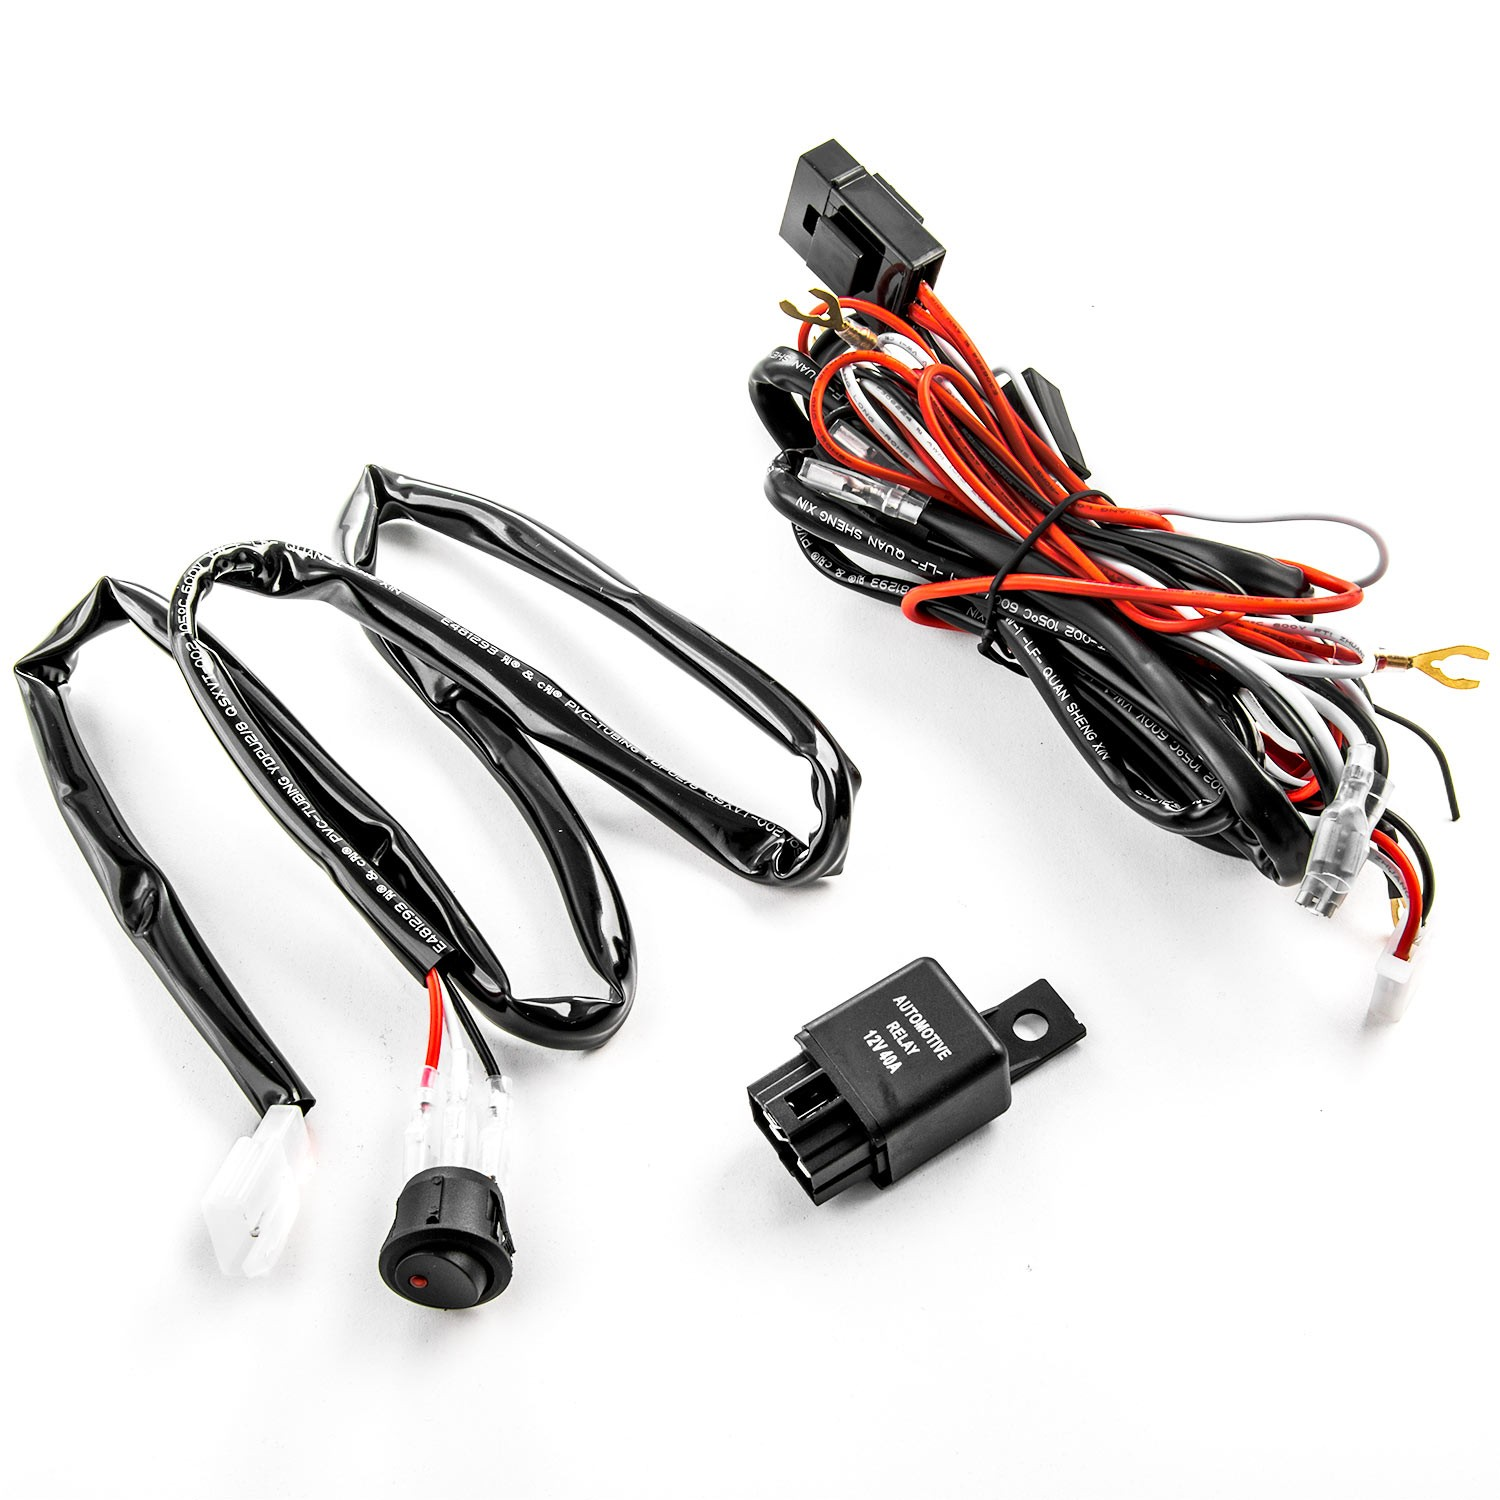 hight resolution of wiring harness kit for led lights 200w 12v 40a fuse relay on off switch relay universal compatible with led hid or halogen off road light bars